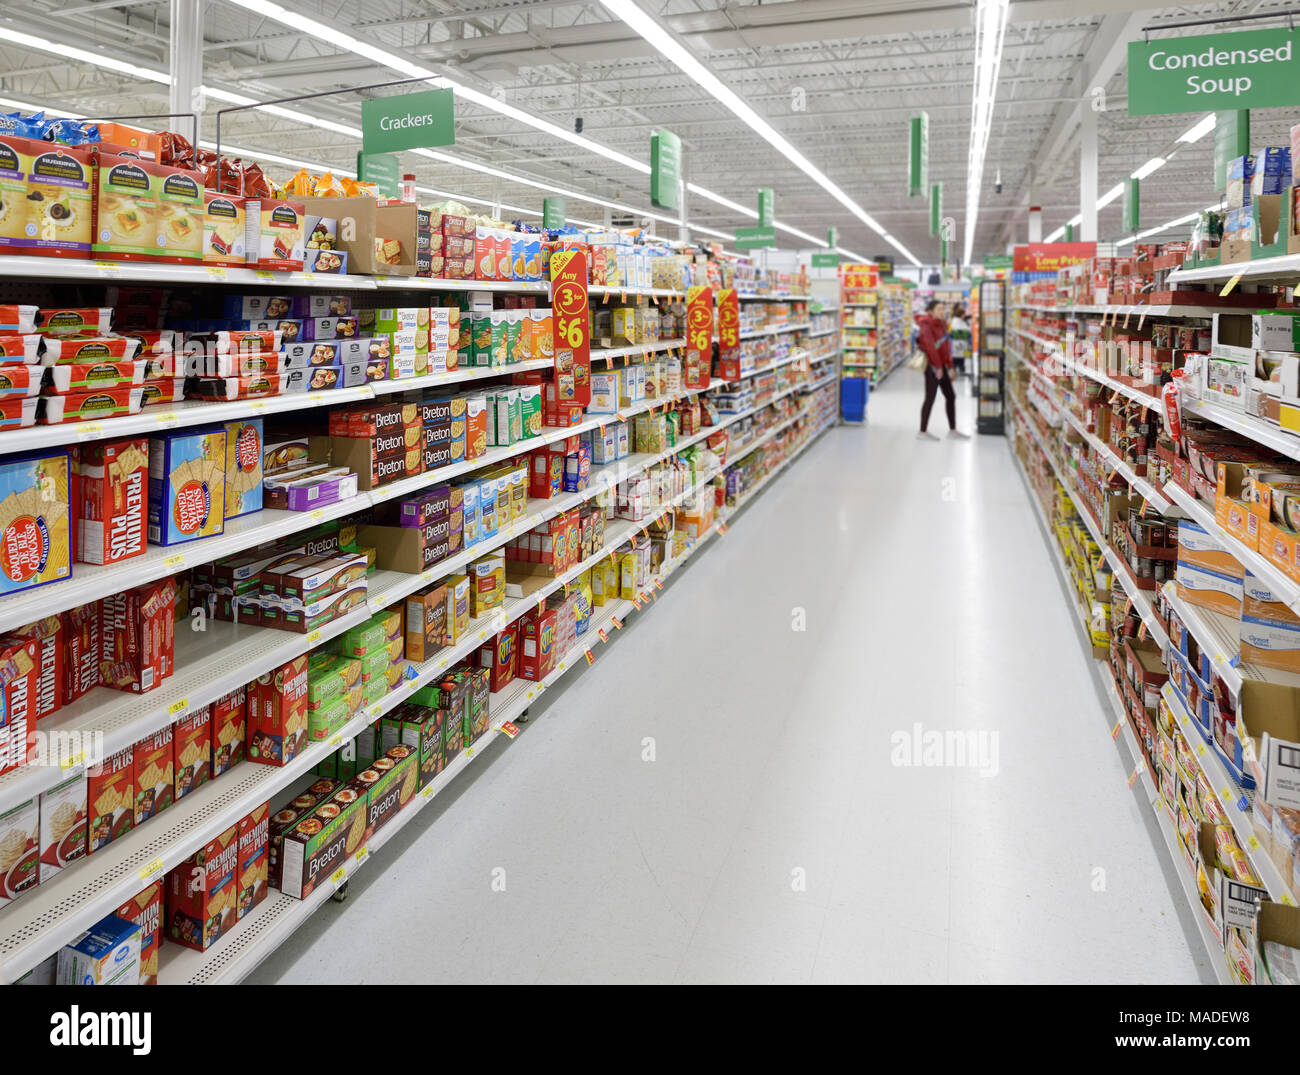 Groceries and canned food aisles at Walmart store food section. British Columbia, Canada 2017. Stock Photo